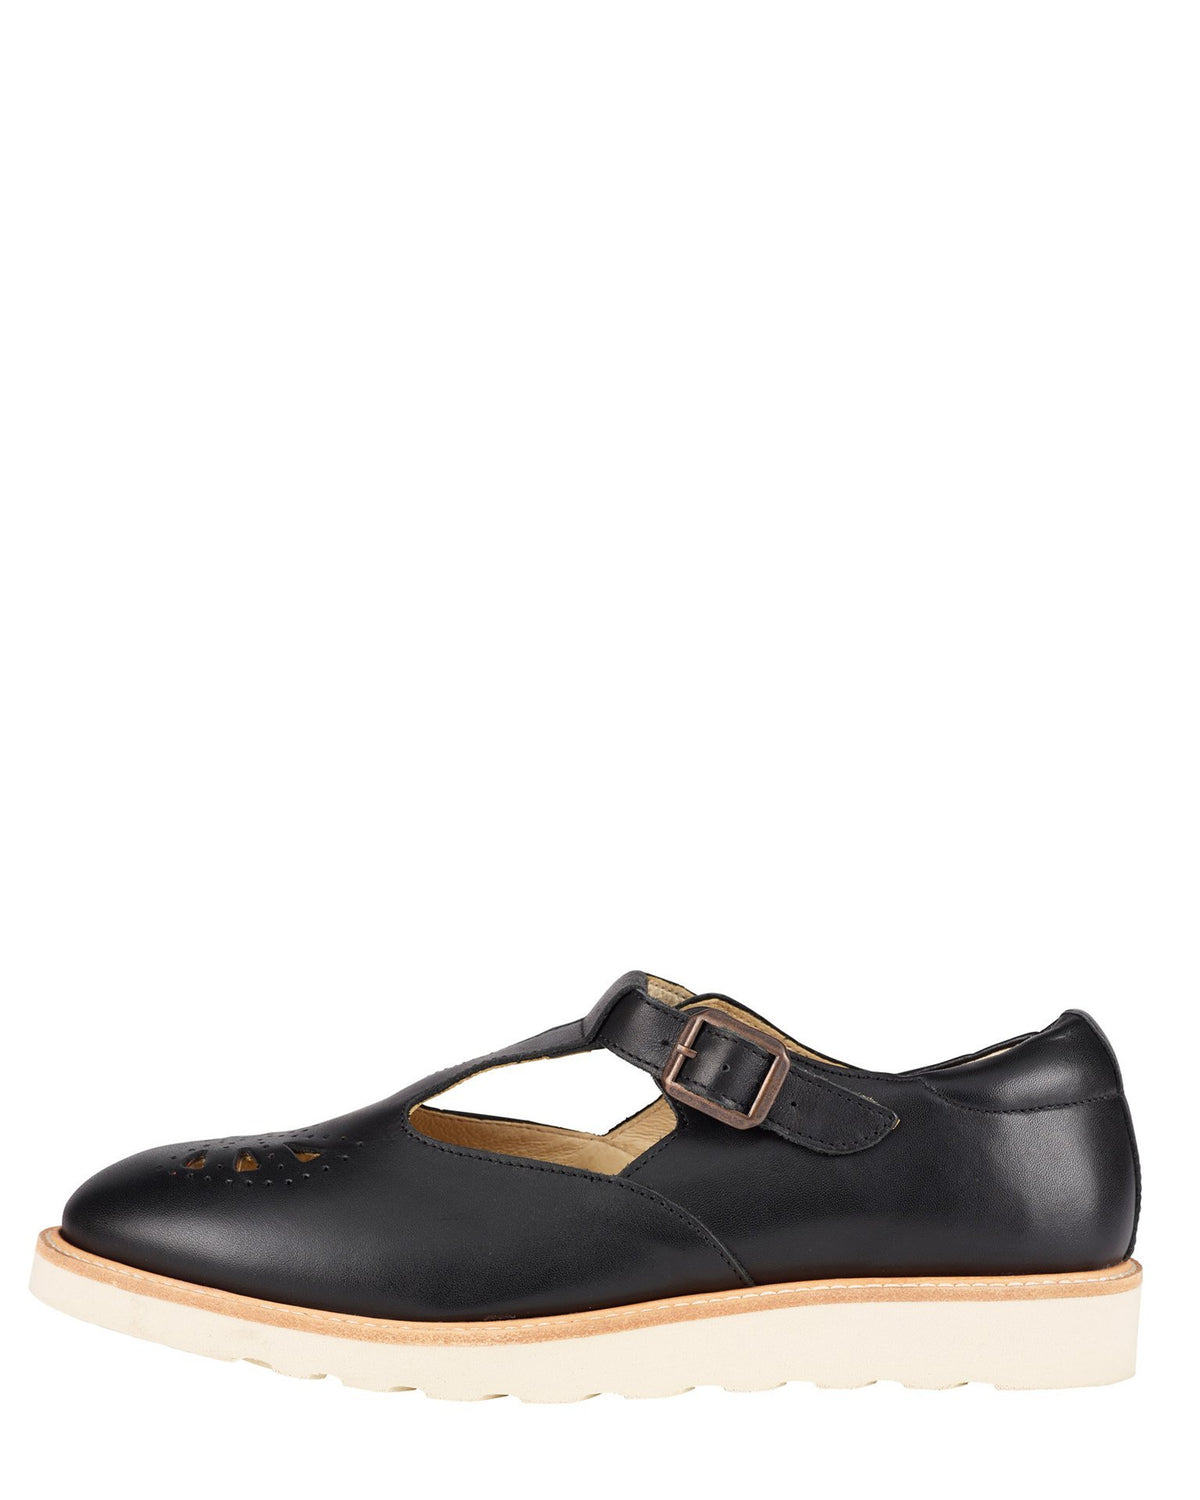 Young Soles Shoes Black / 36 Rosie T-Bar